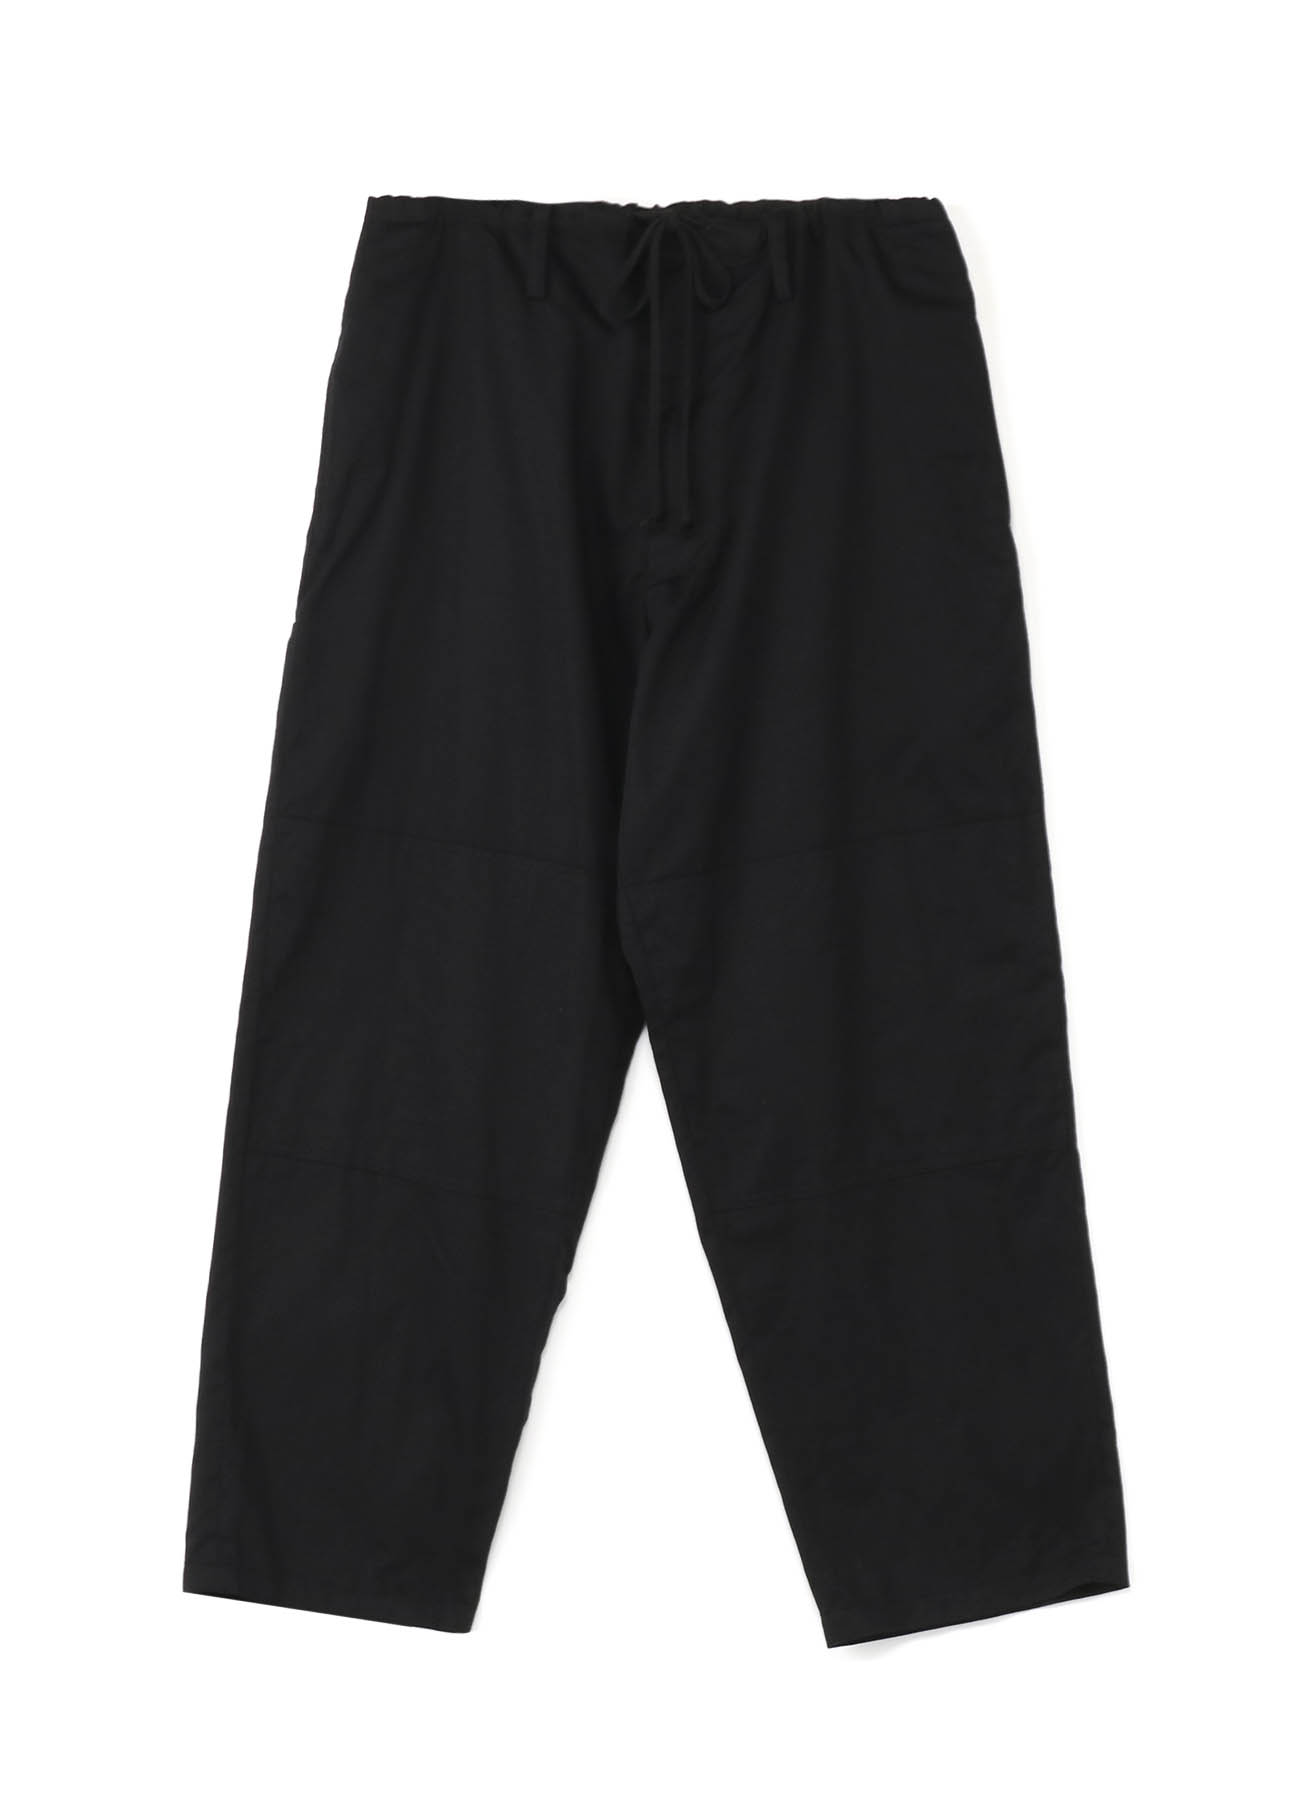 20/Cotton Twill Waist String Double Knee Pants